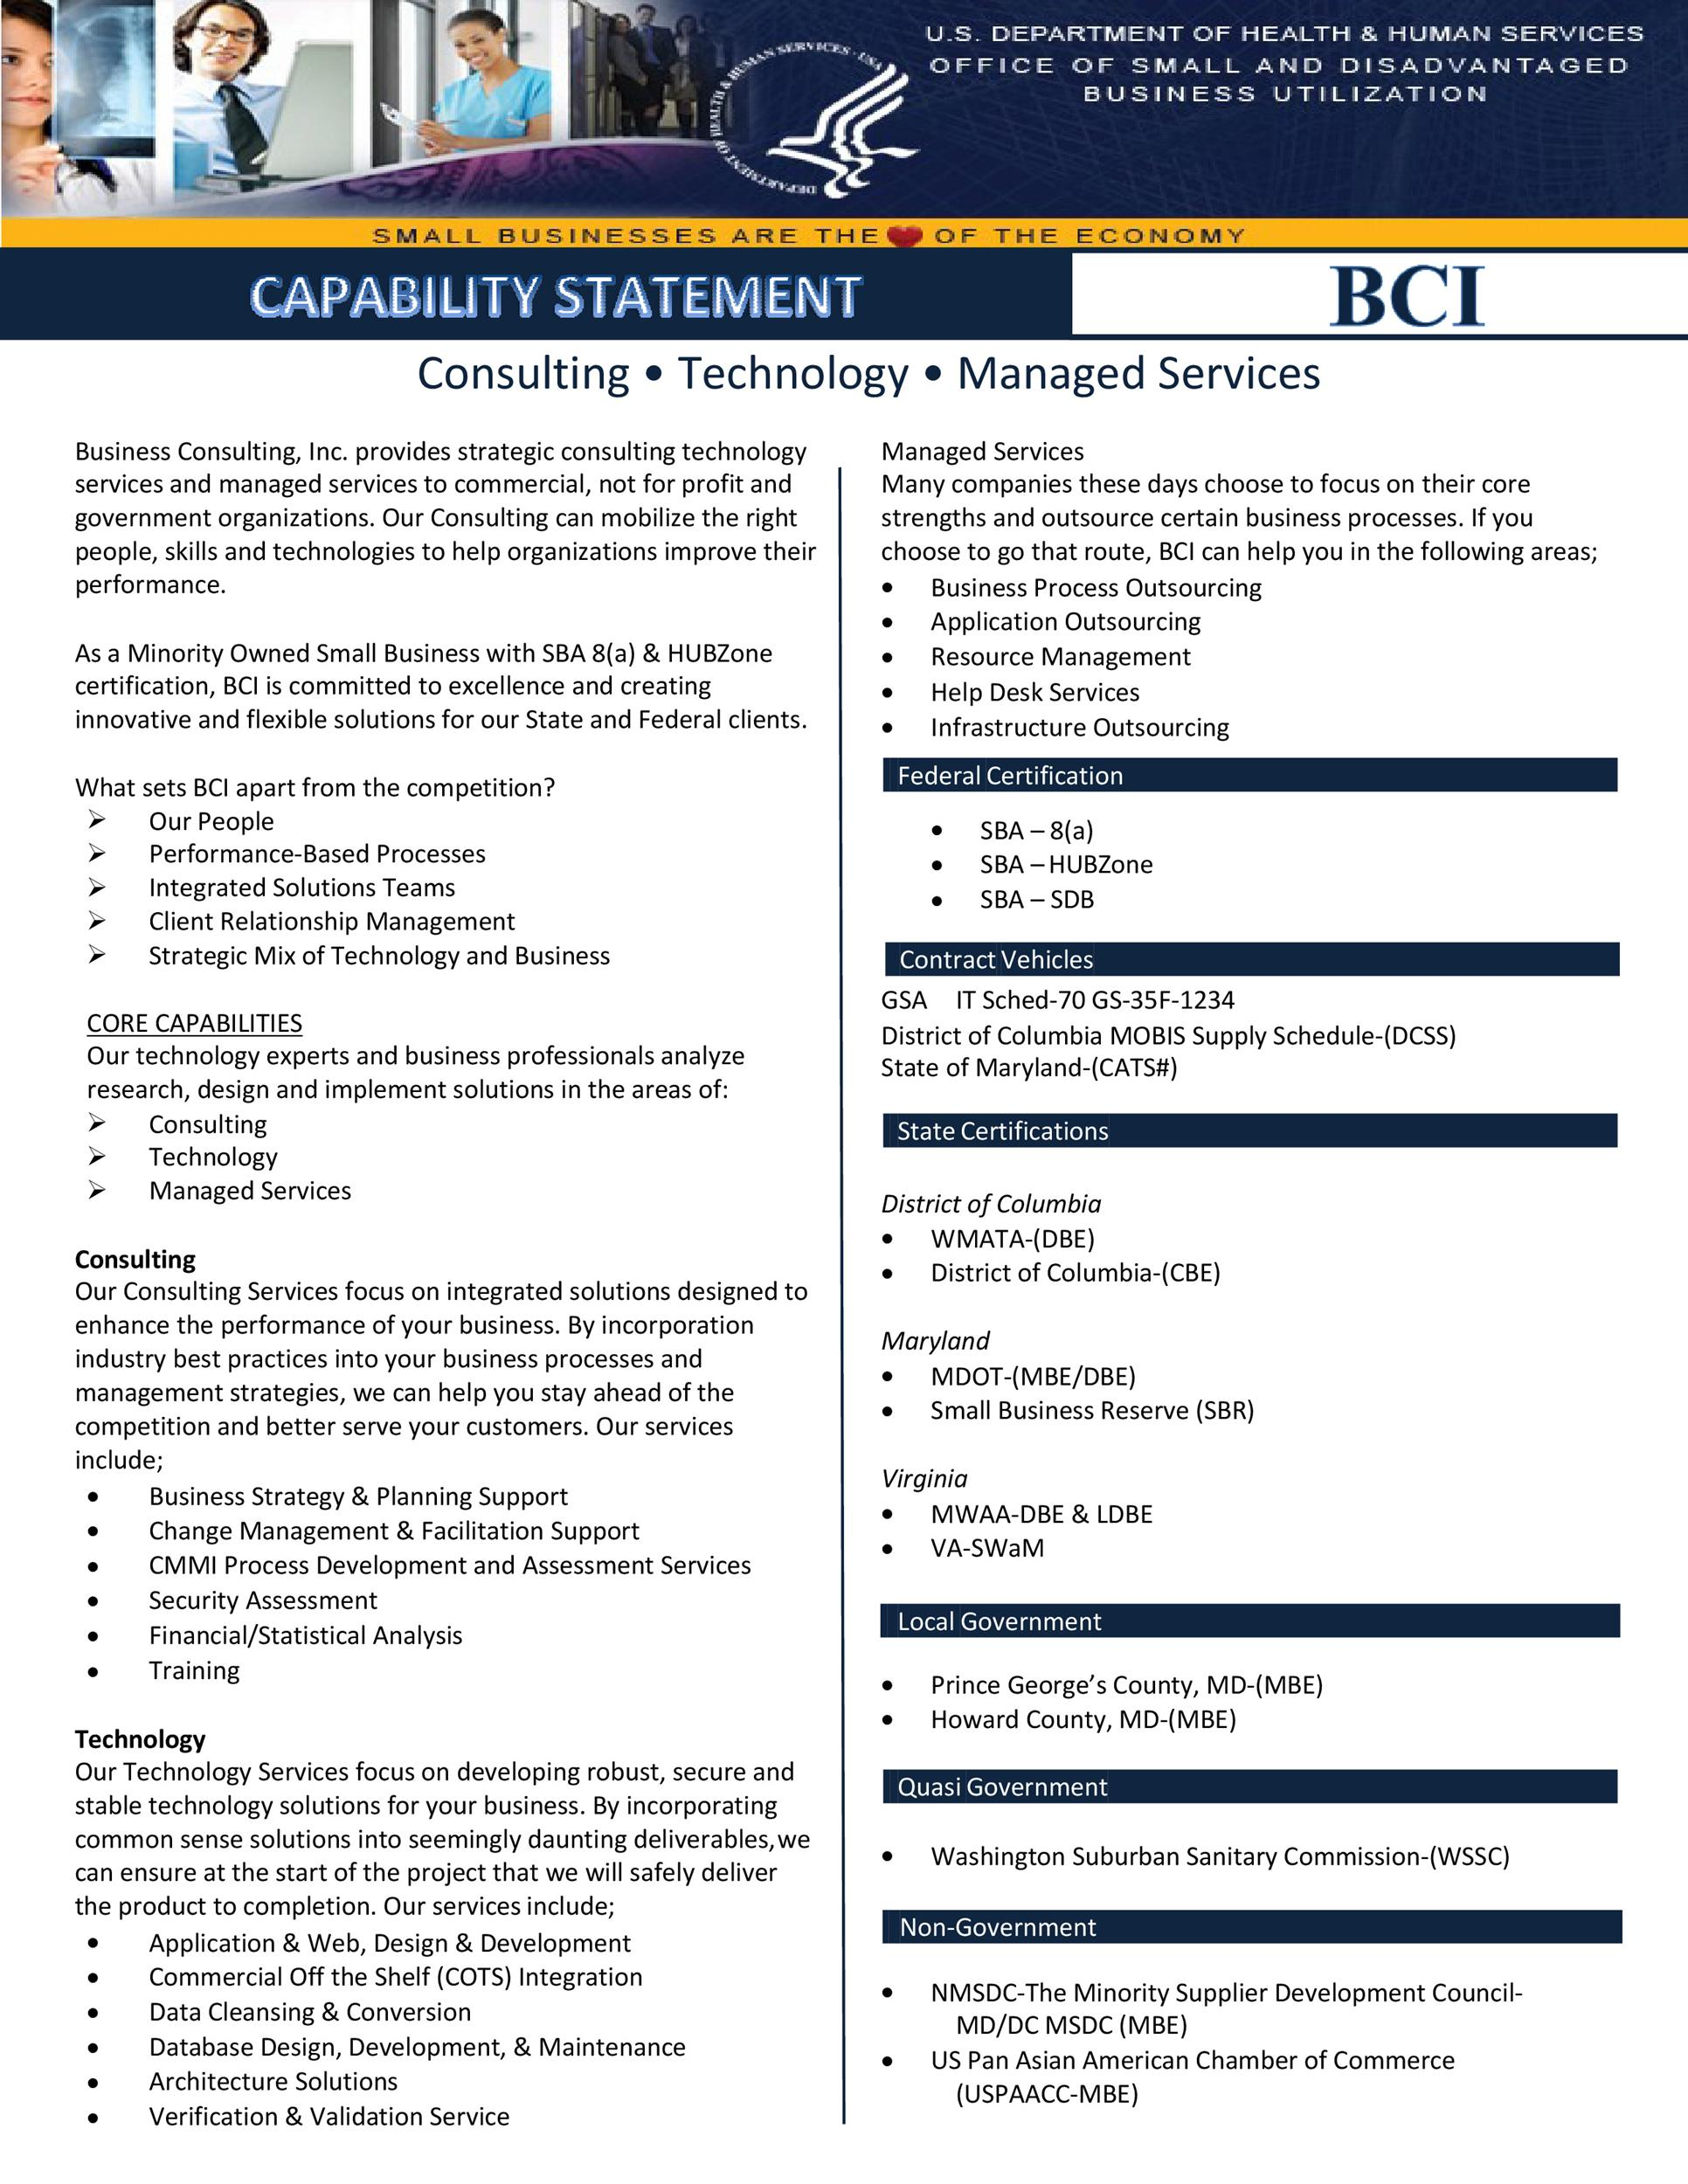 Free capability statement 21